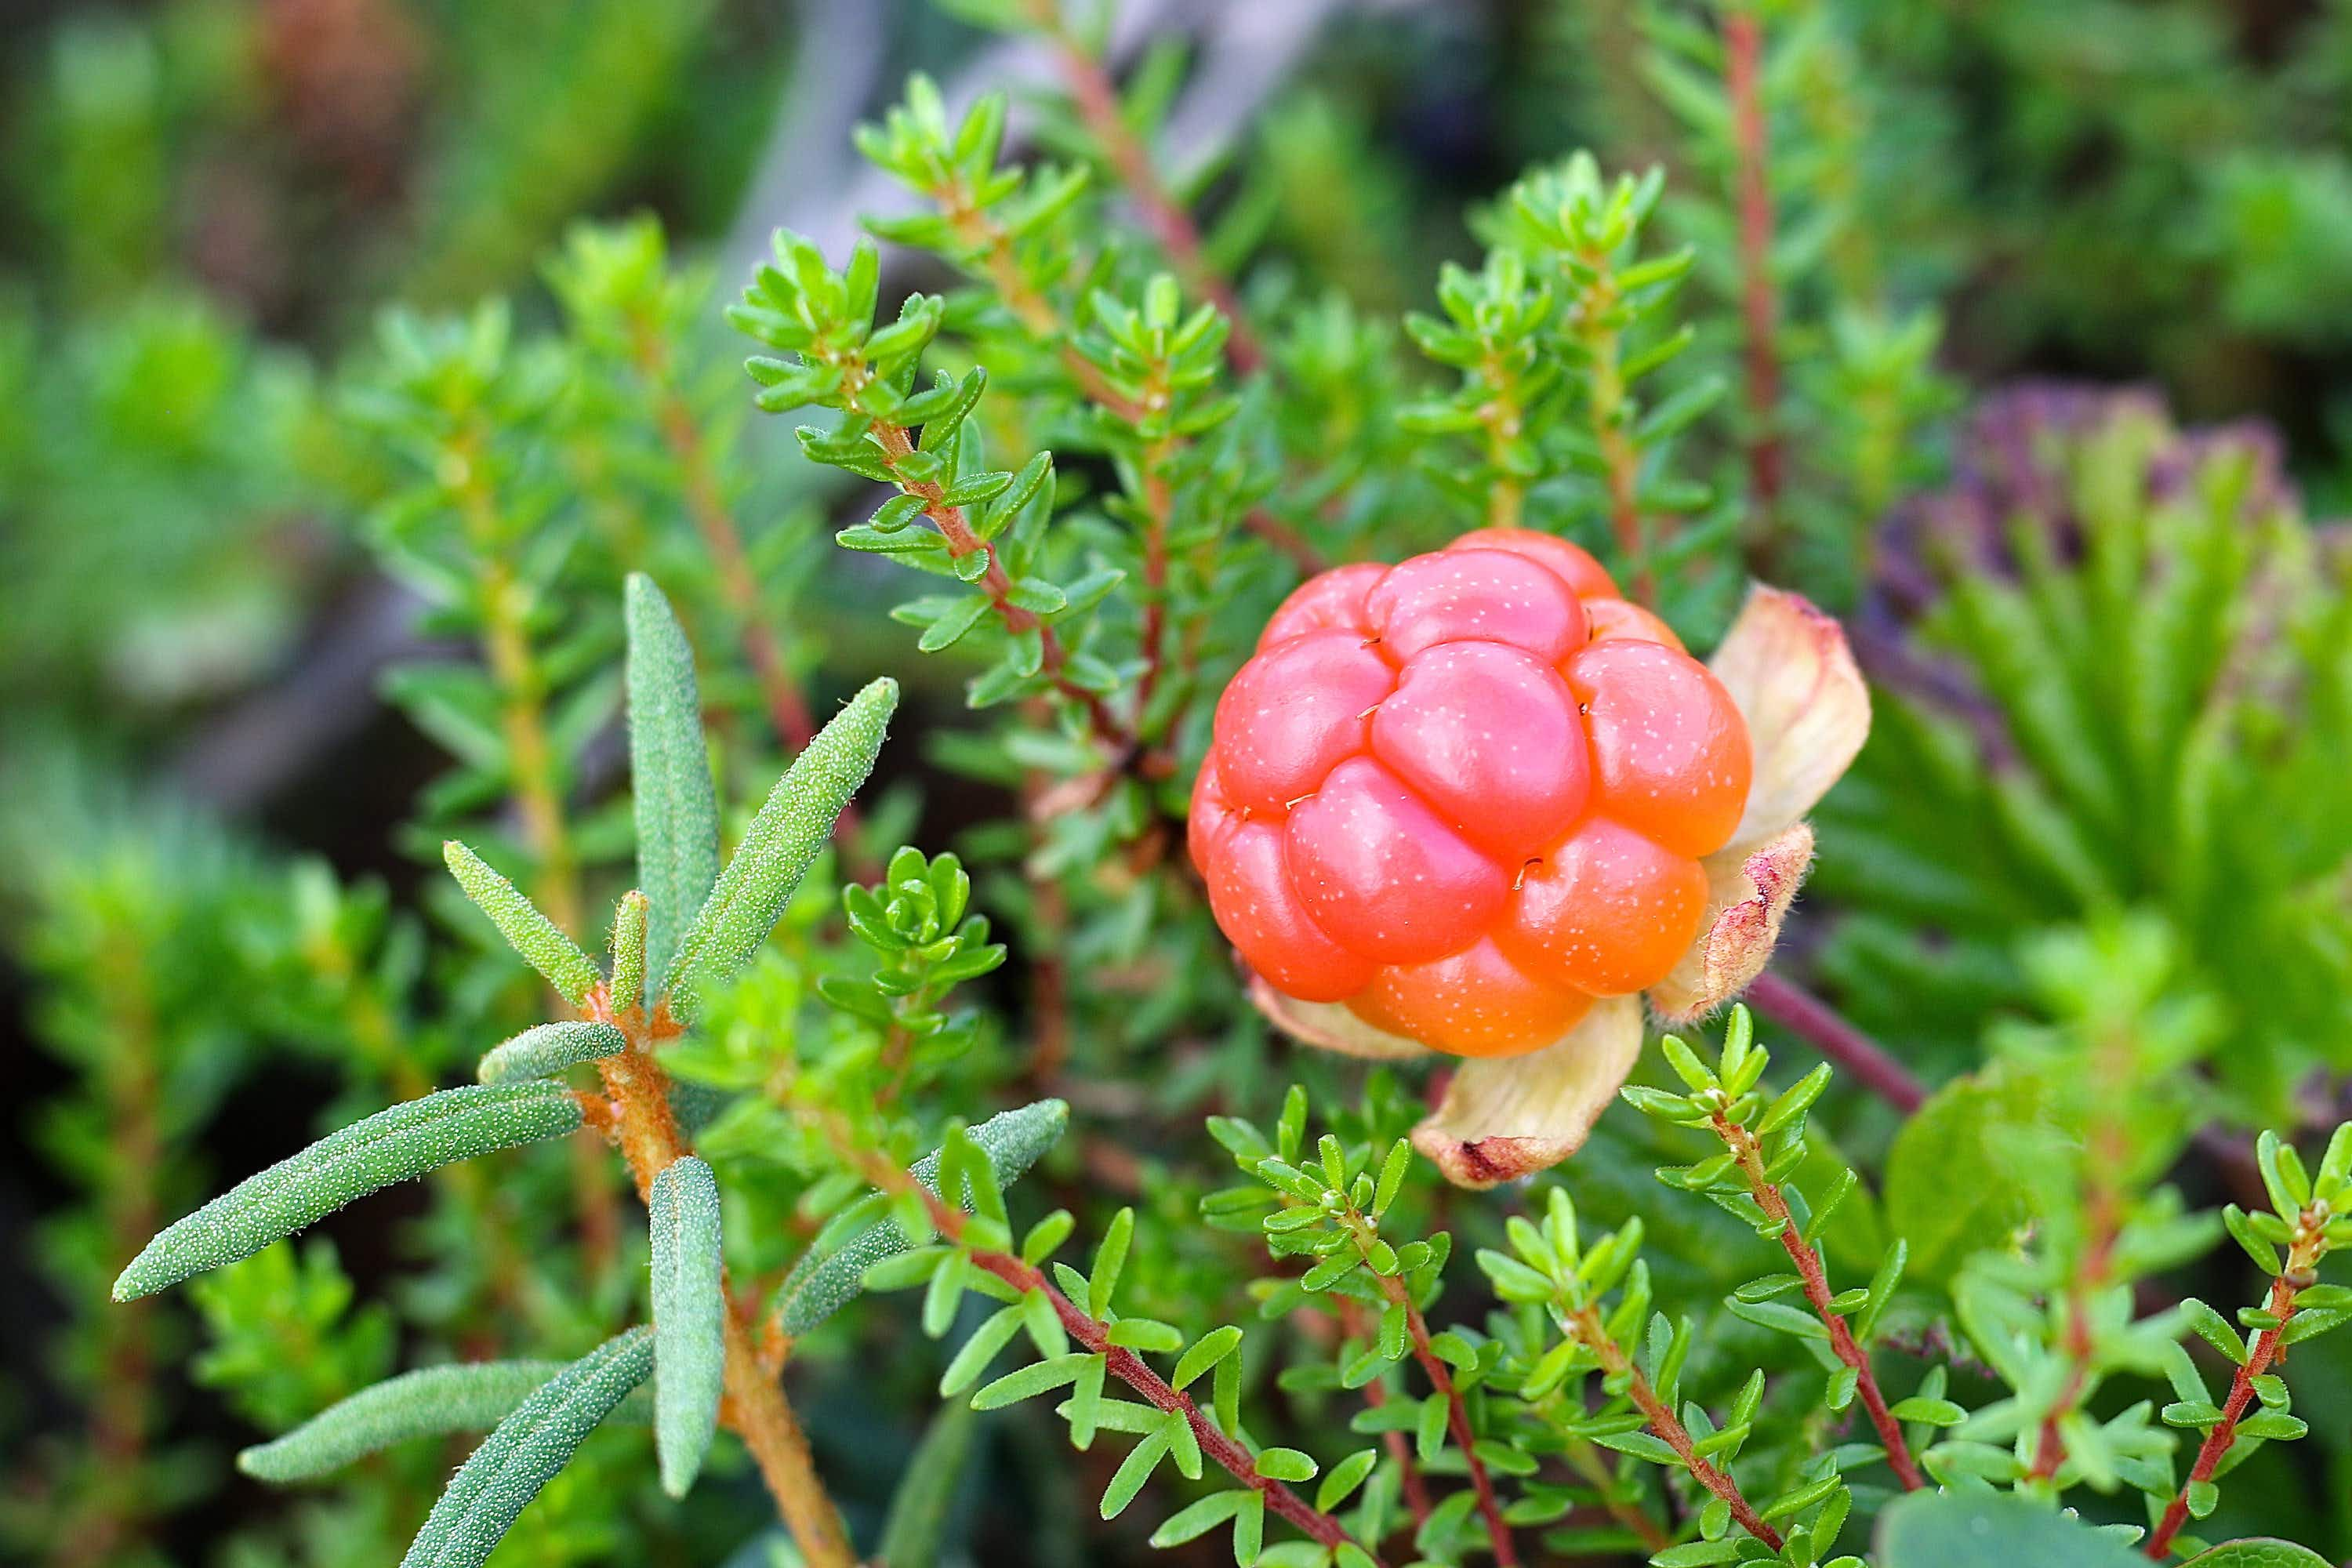 Lapland's gold: foraging for cloudberries in Finland